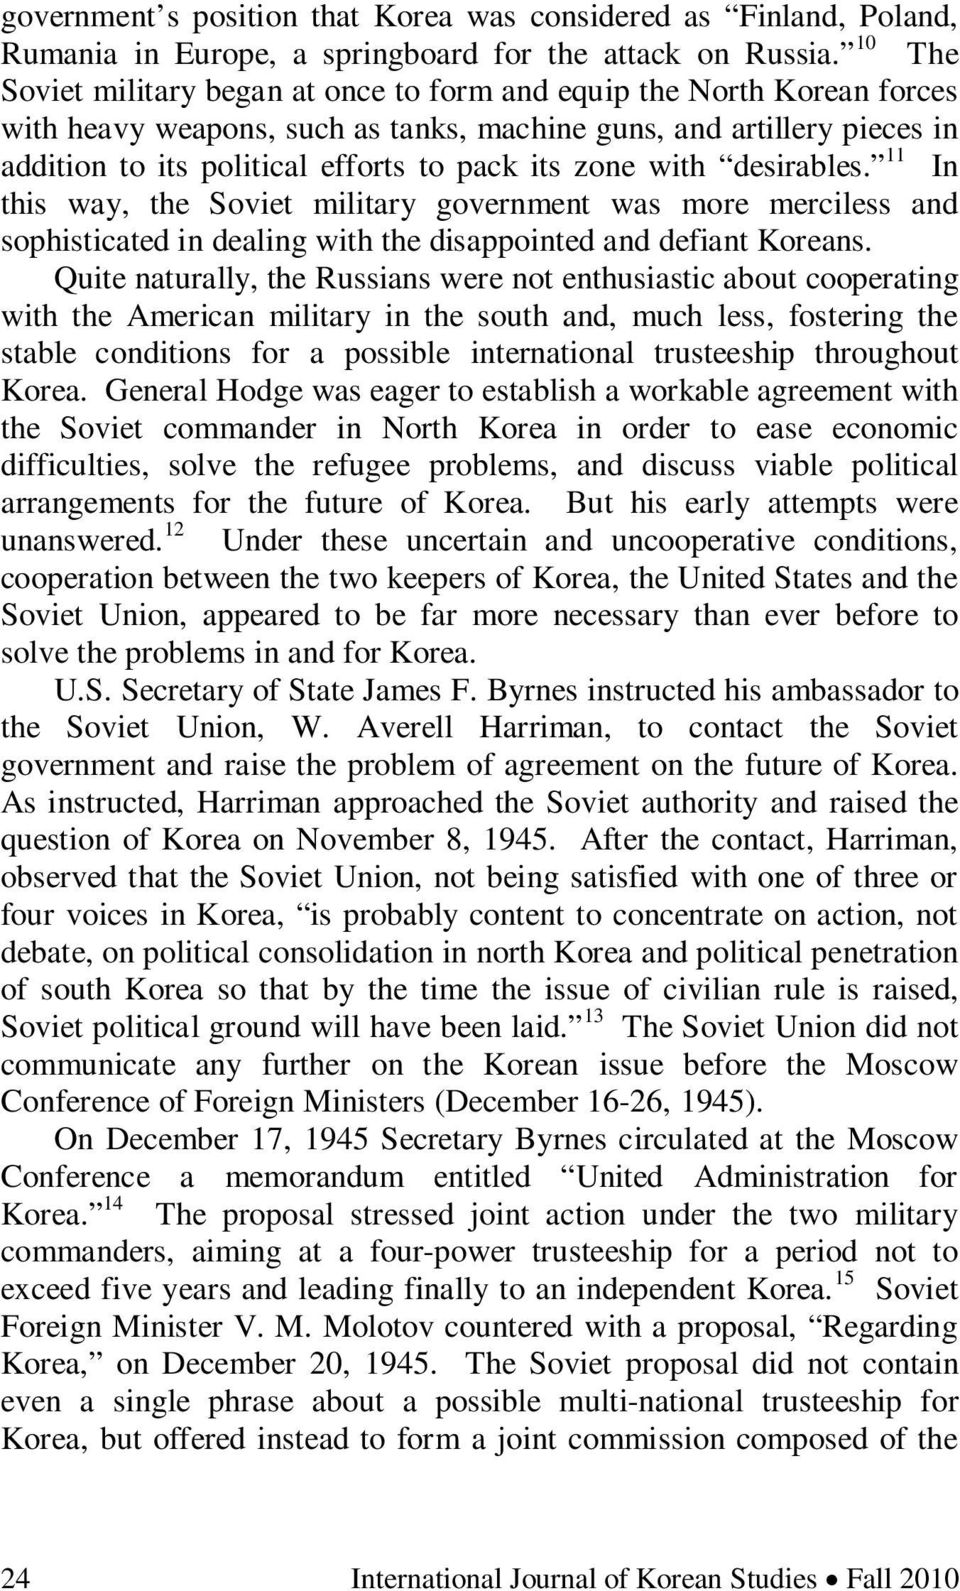 zone with desirables. 11 In this way, the Soviet military government was more merciless and sophisticated in dealing with the disappointed and defiant Koreans.